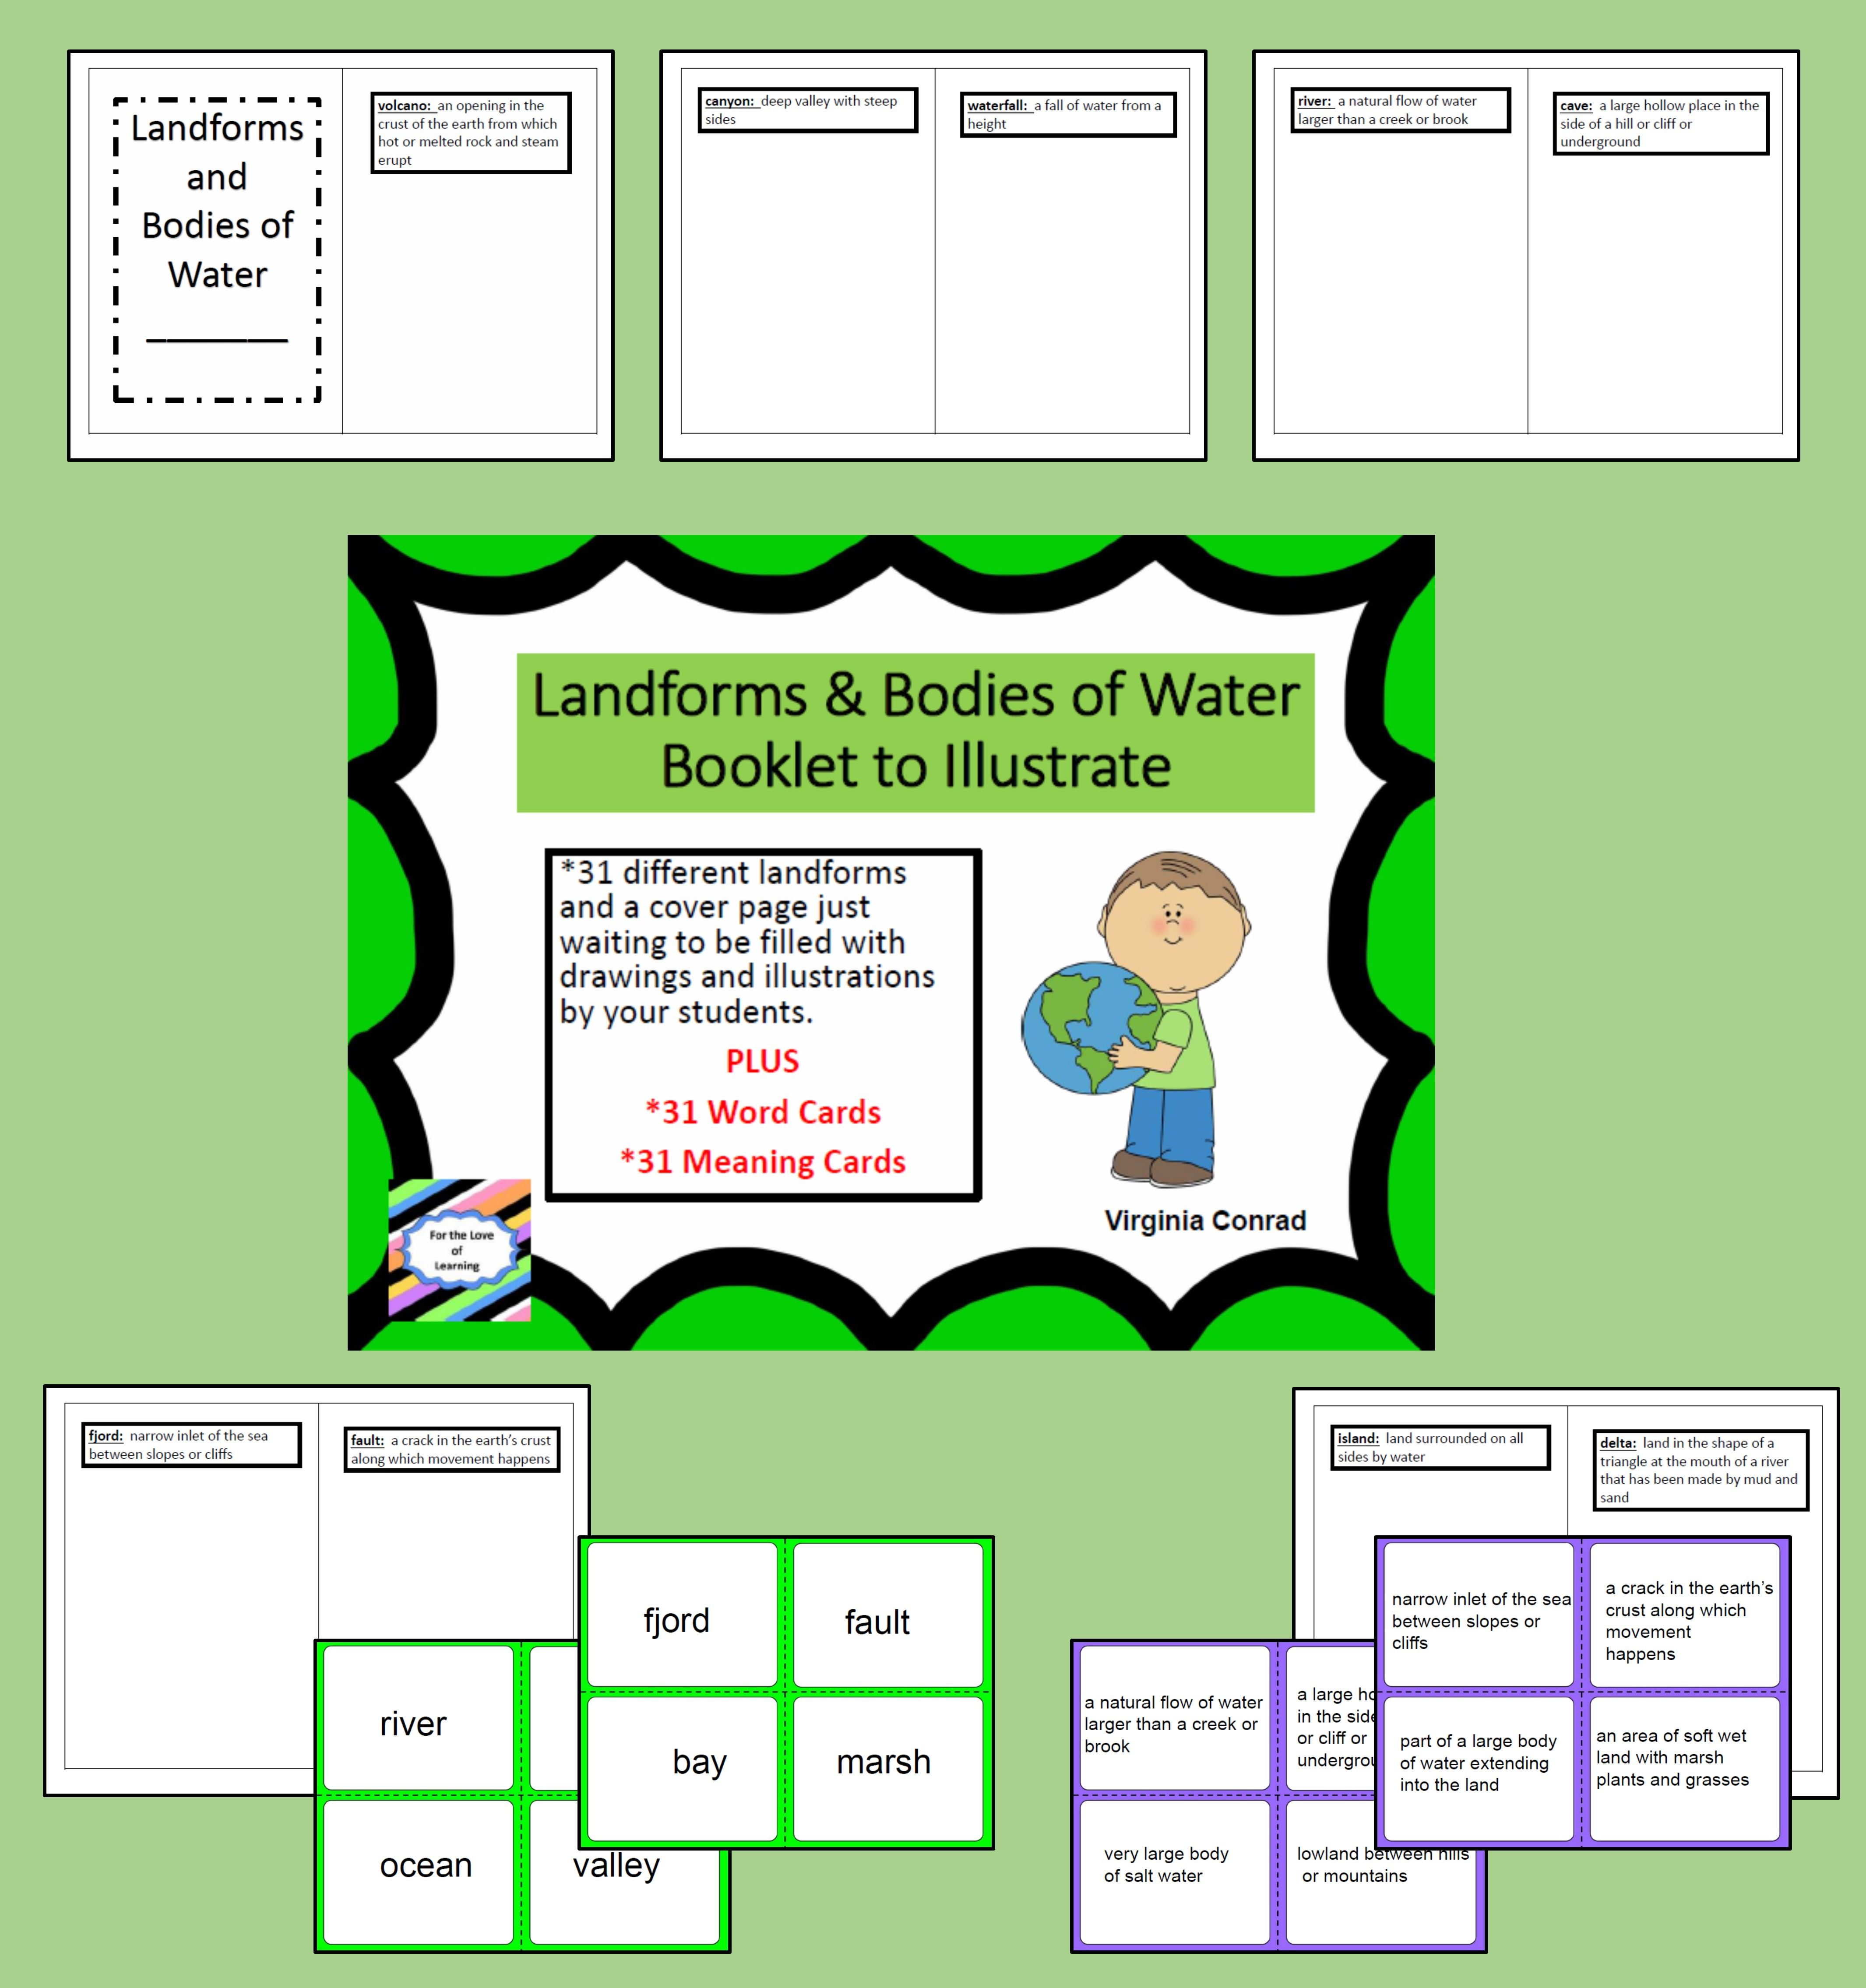 Worksheets Landforms And Bodies Of Water Worksheet landforms and bodies of water booklet to illustrate vocabulary 31 are the focus this packet